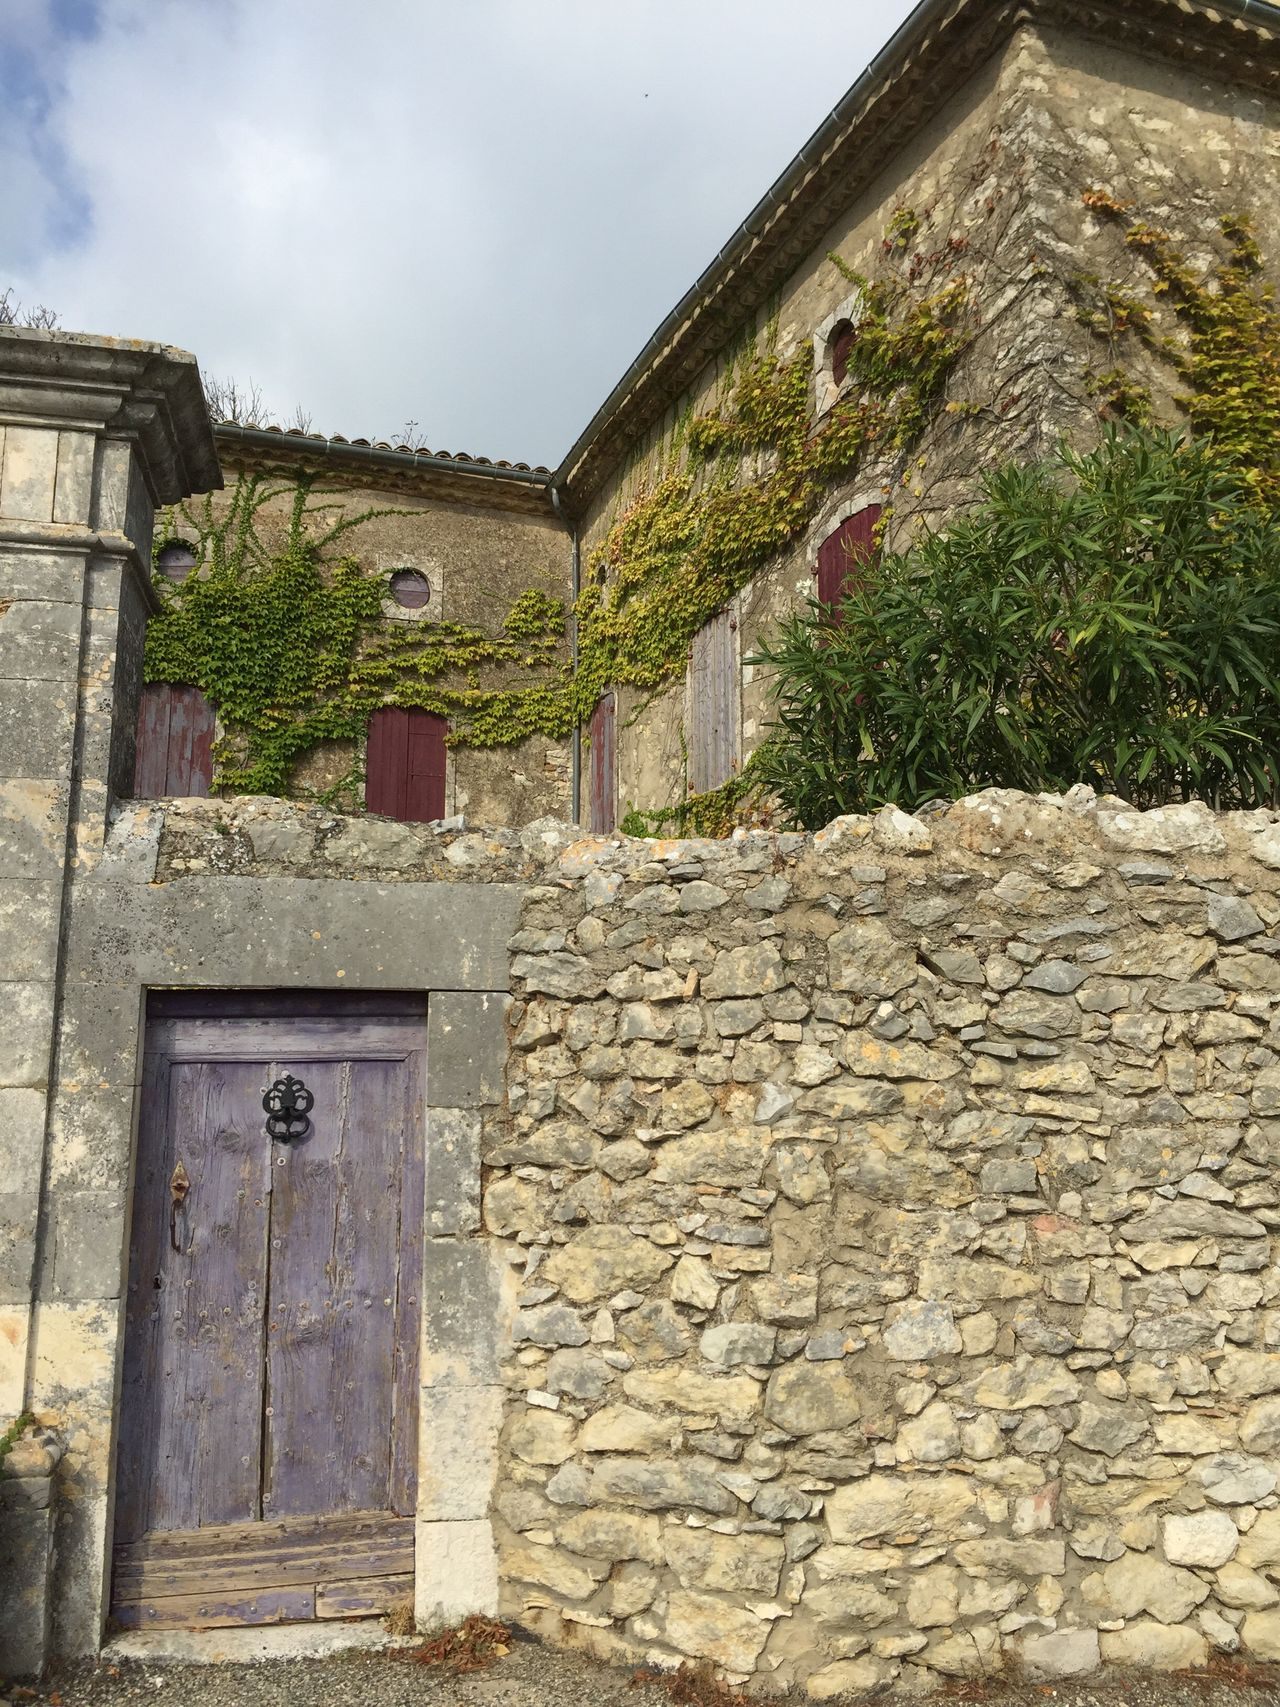 France Occitanie Gard Lussan Village Village Life Enjoying Life Built Structure Architecture Building Exterior No People Day Outdoors Ivy Nature